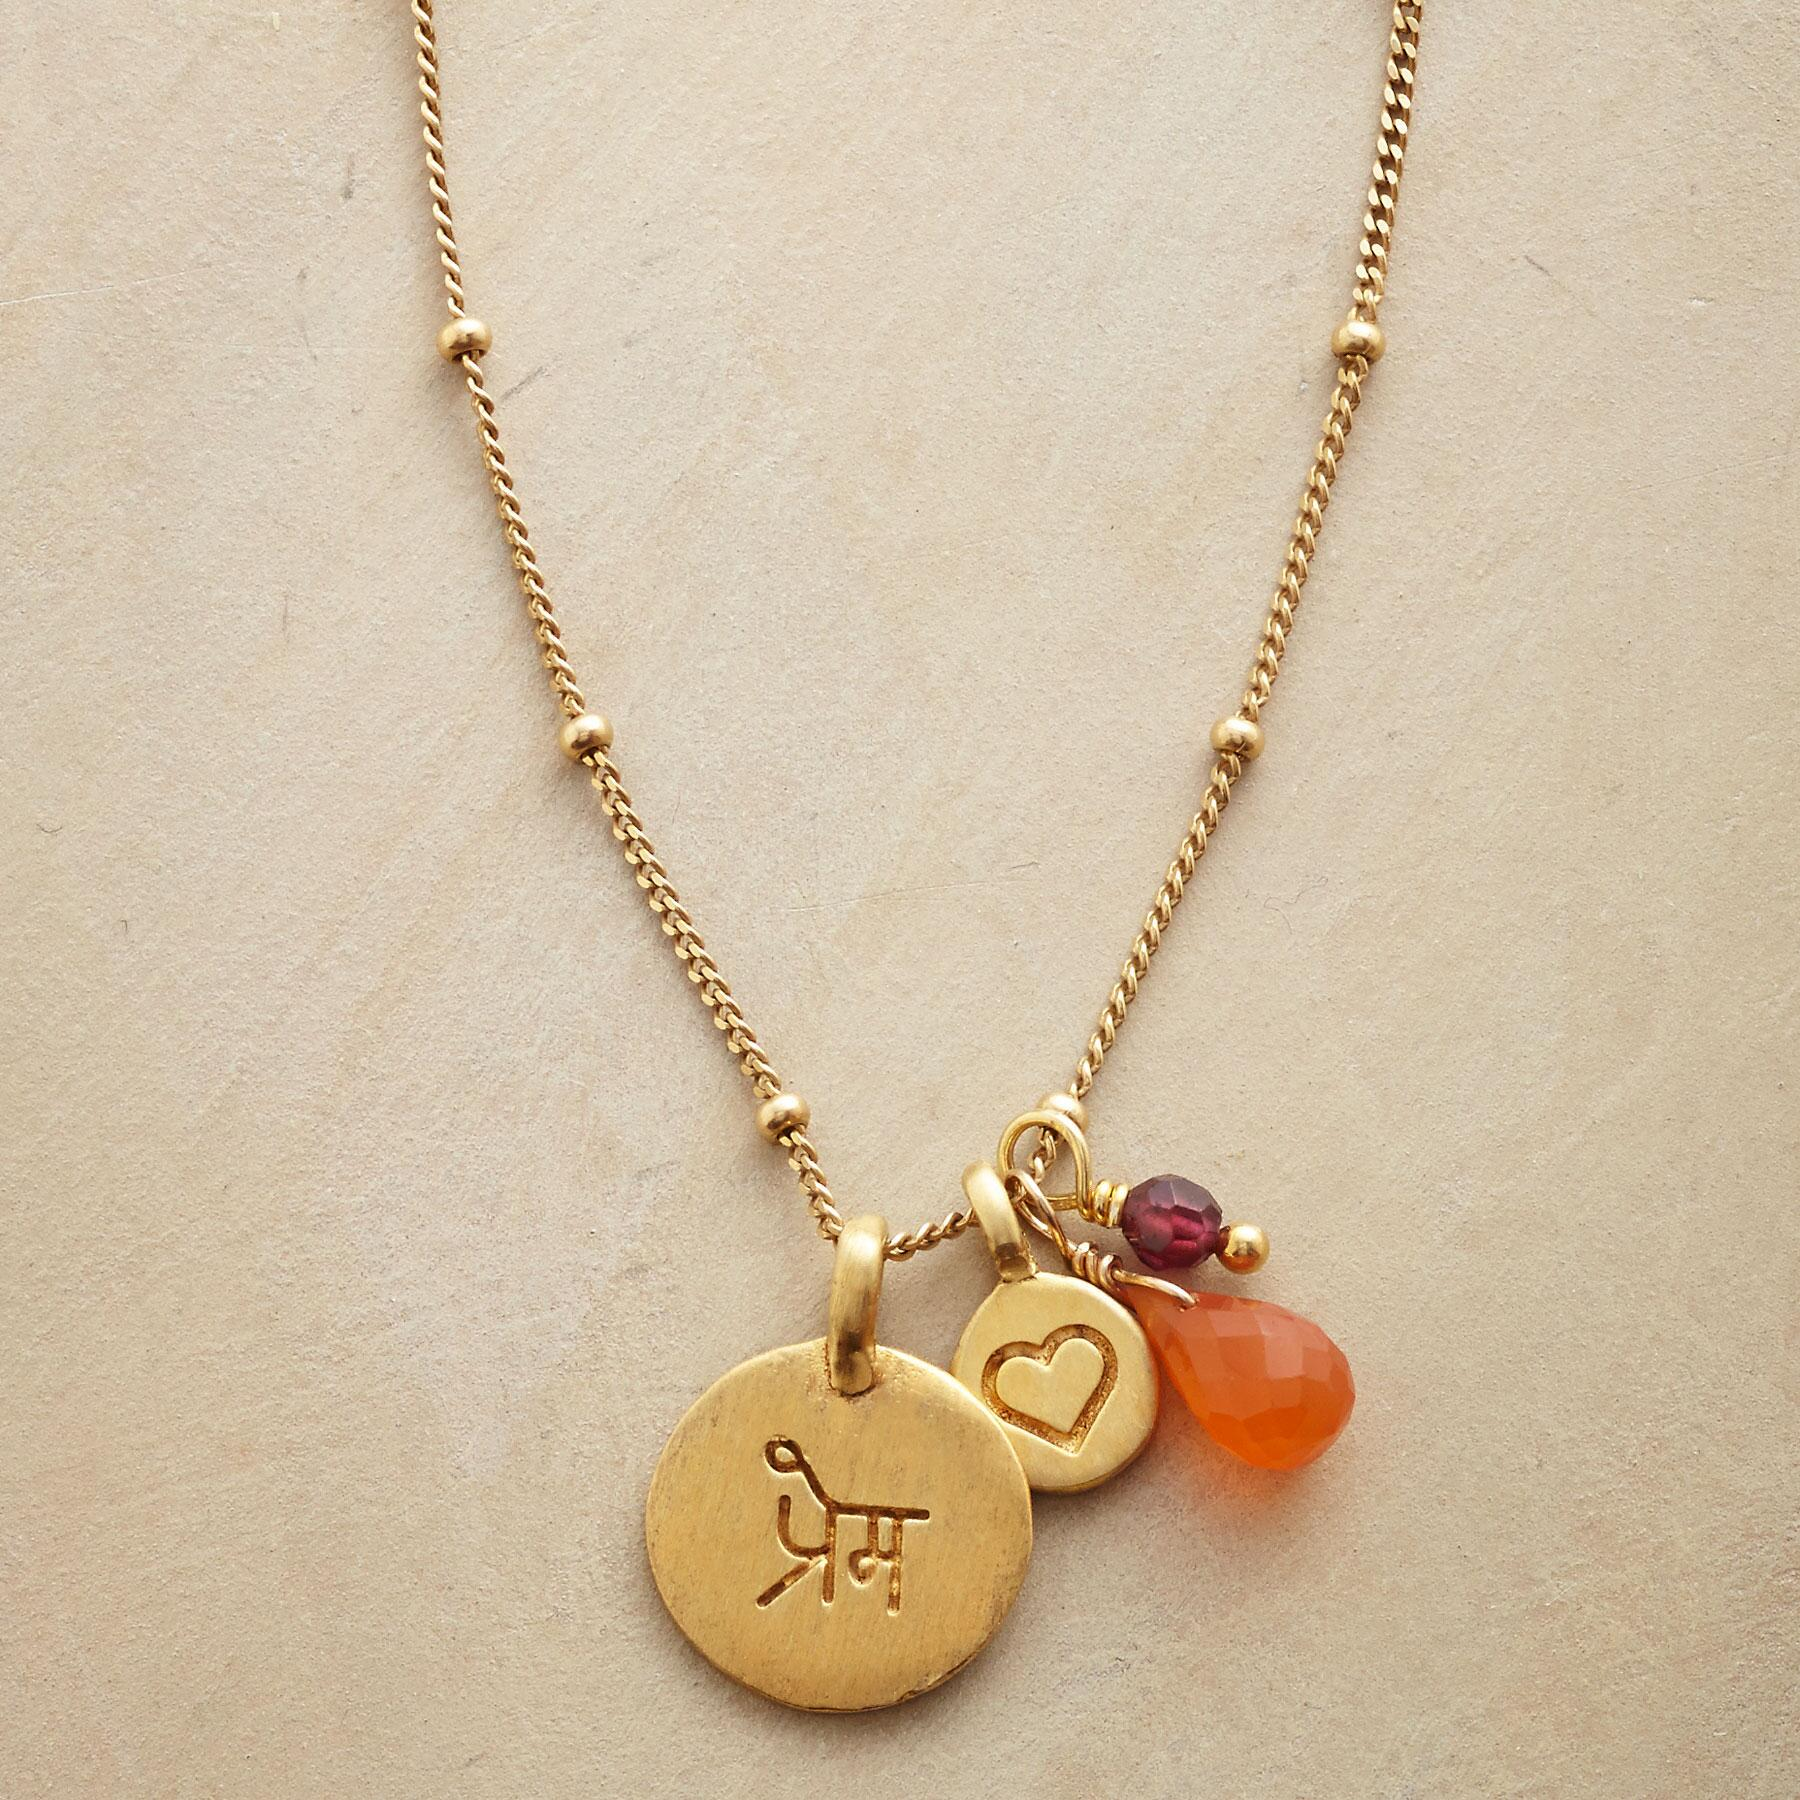 LOVE A LITTLE NECKLACE: View 4